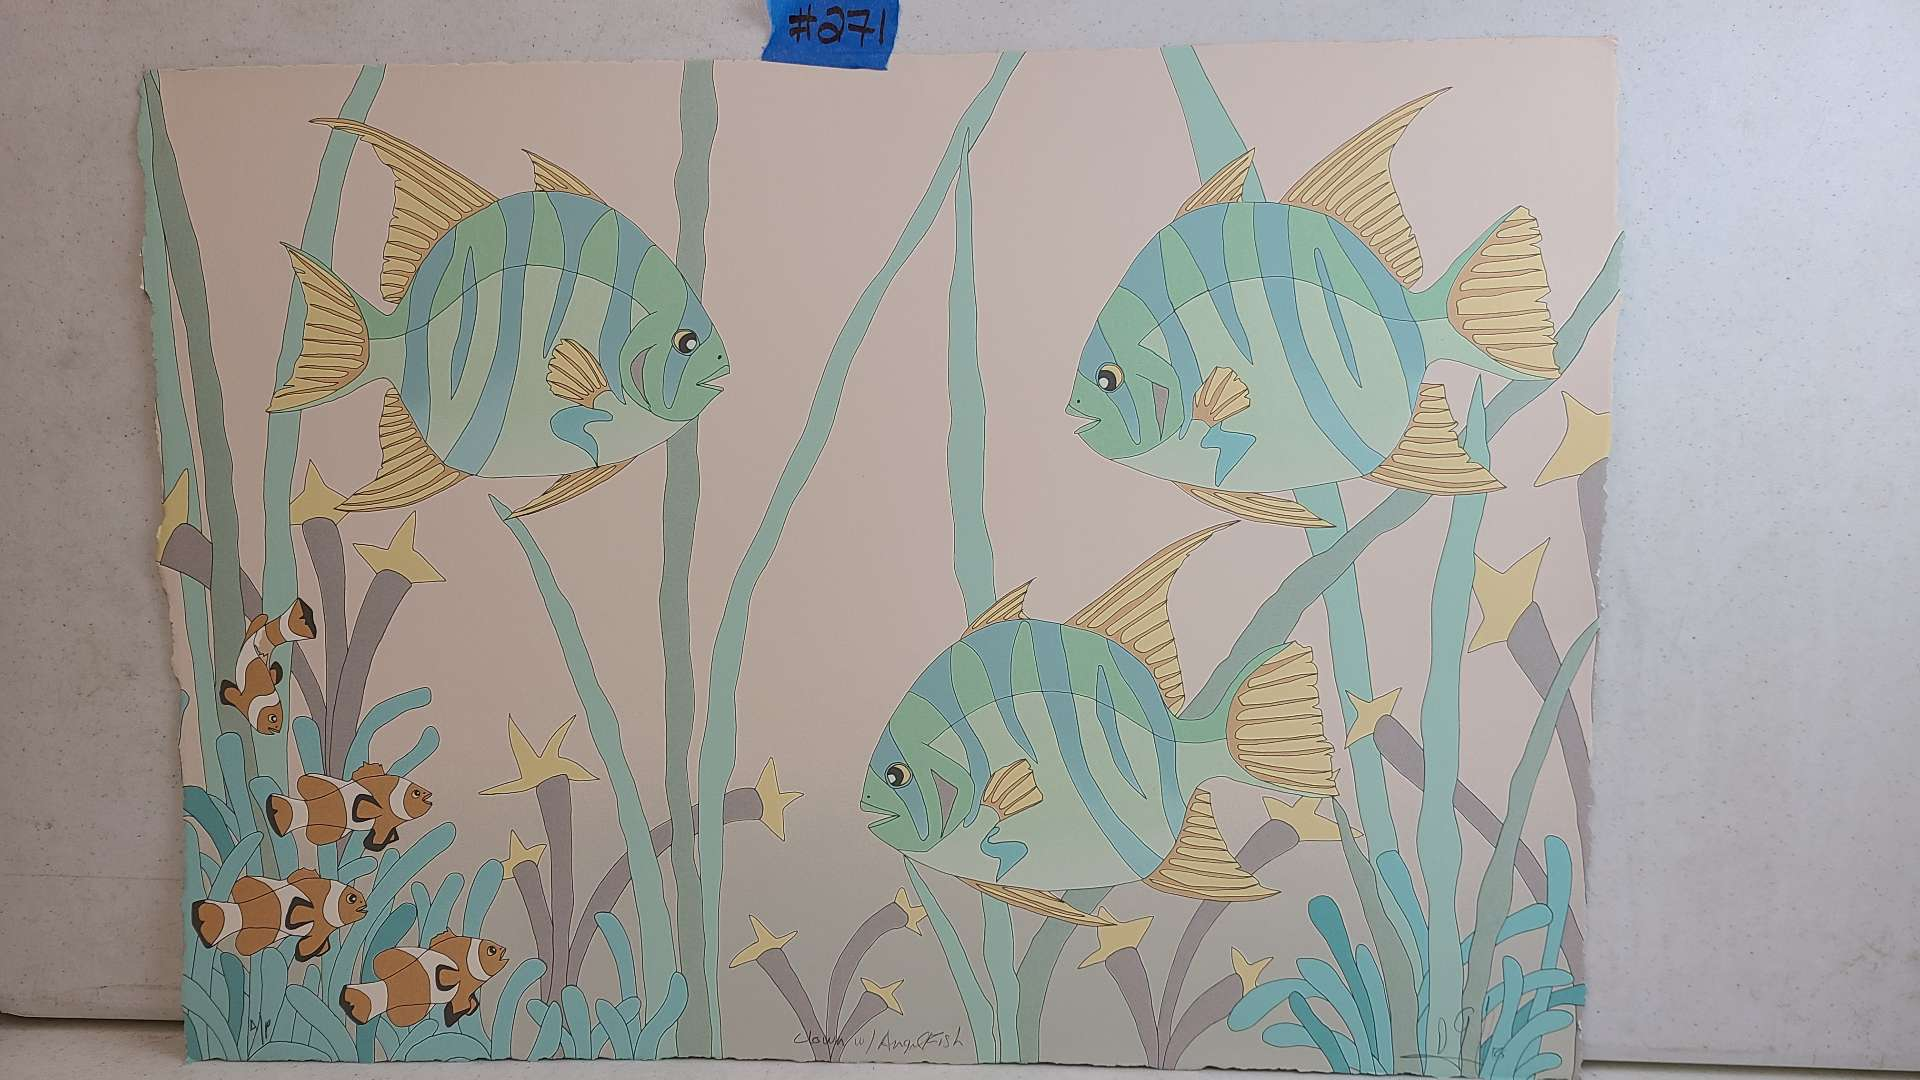 Lot # 271 Ocean Themed Signed & Numbered Lithograph